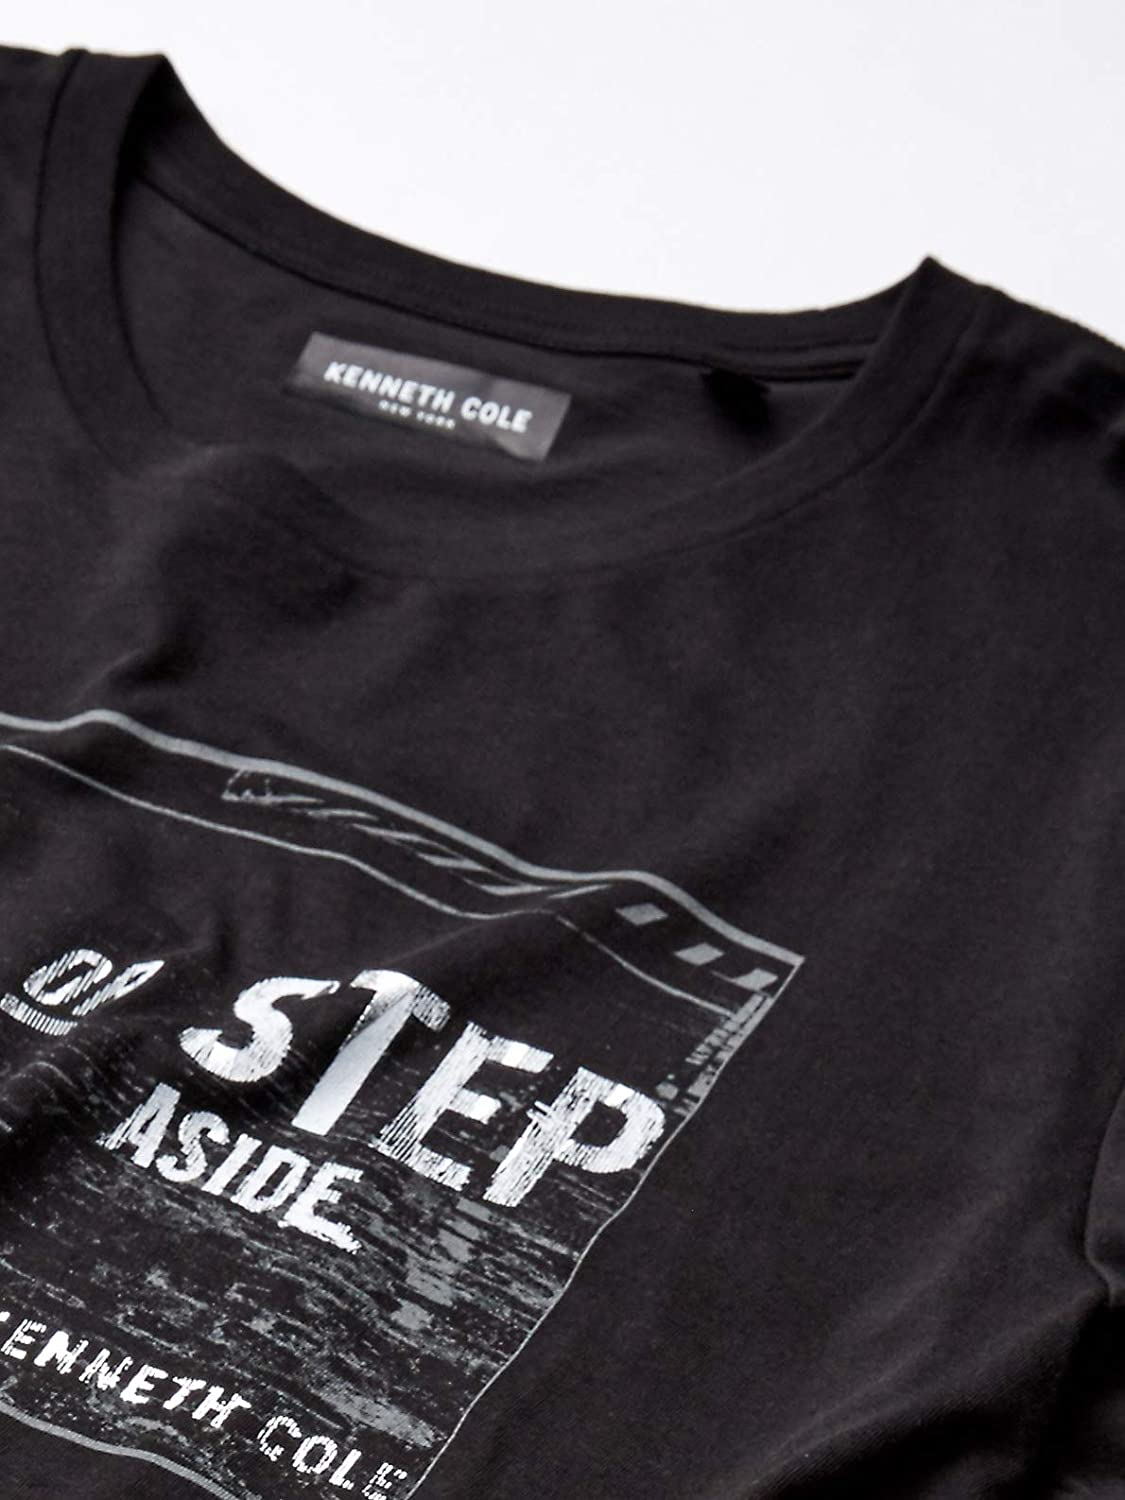 Kenneth Cole REACTION Mens Short Sleeve Graphic Tee